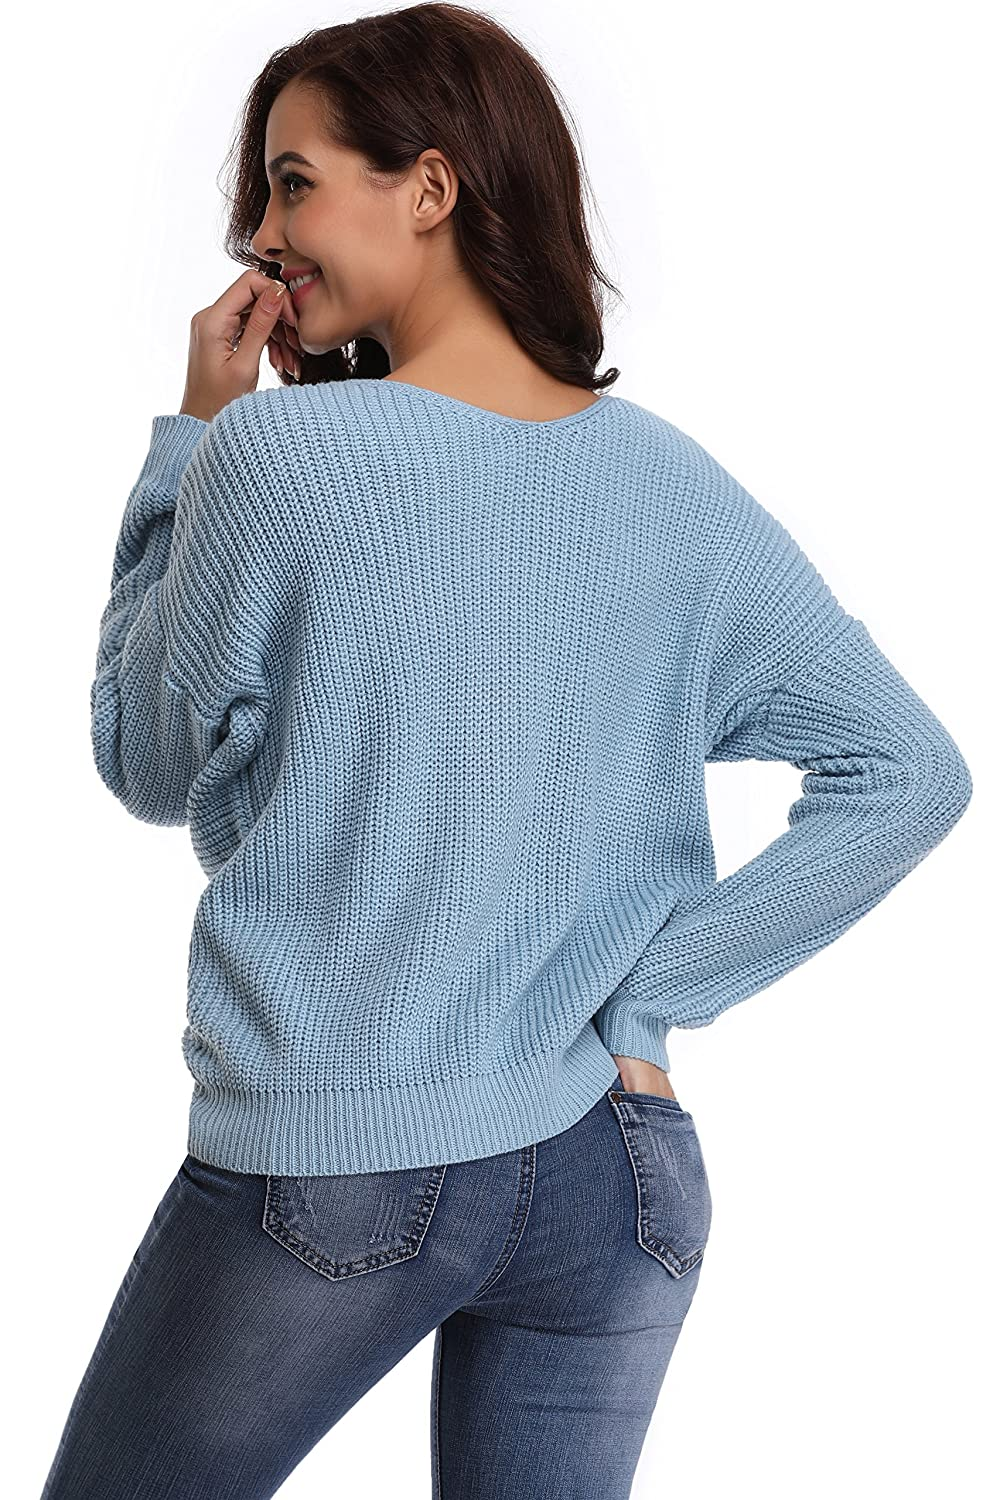 SHEKINI Women/'s Knitted Sweater V Neck Knitwear Top Twisted Backless Reversible Pullover Jumper Long Batwing Sleeve Dropped Shoulders